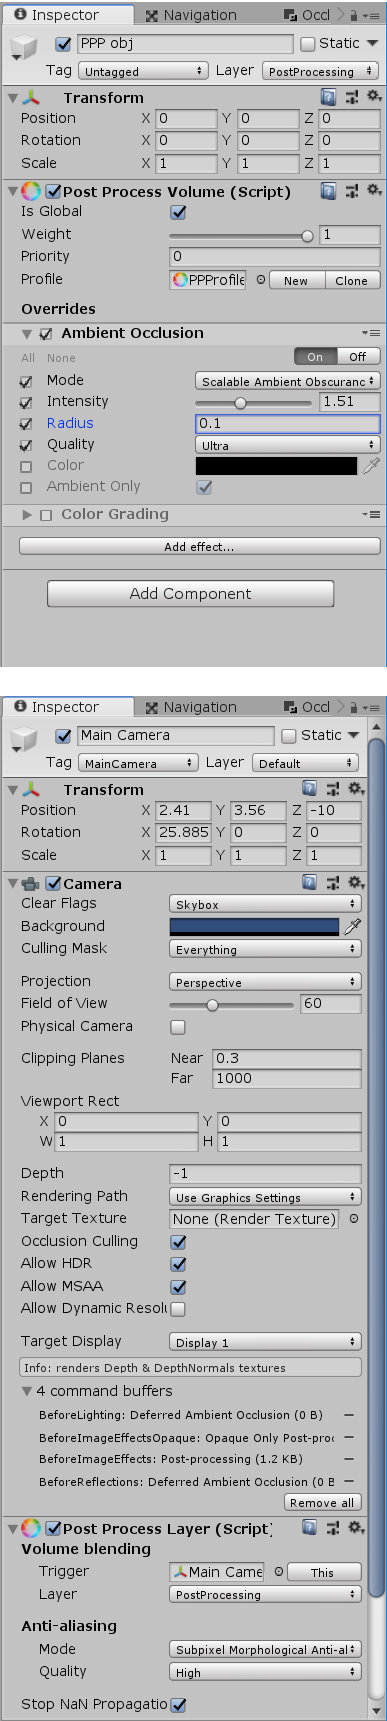 Video - Unity Recorder update | Page 6 - Unity Forum